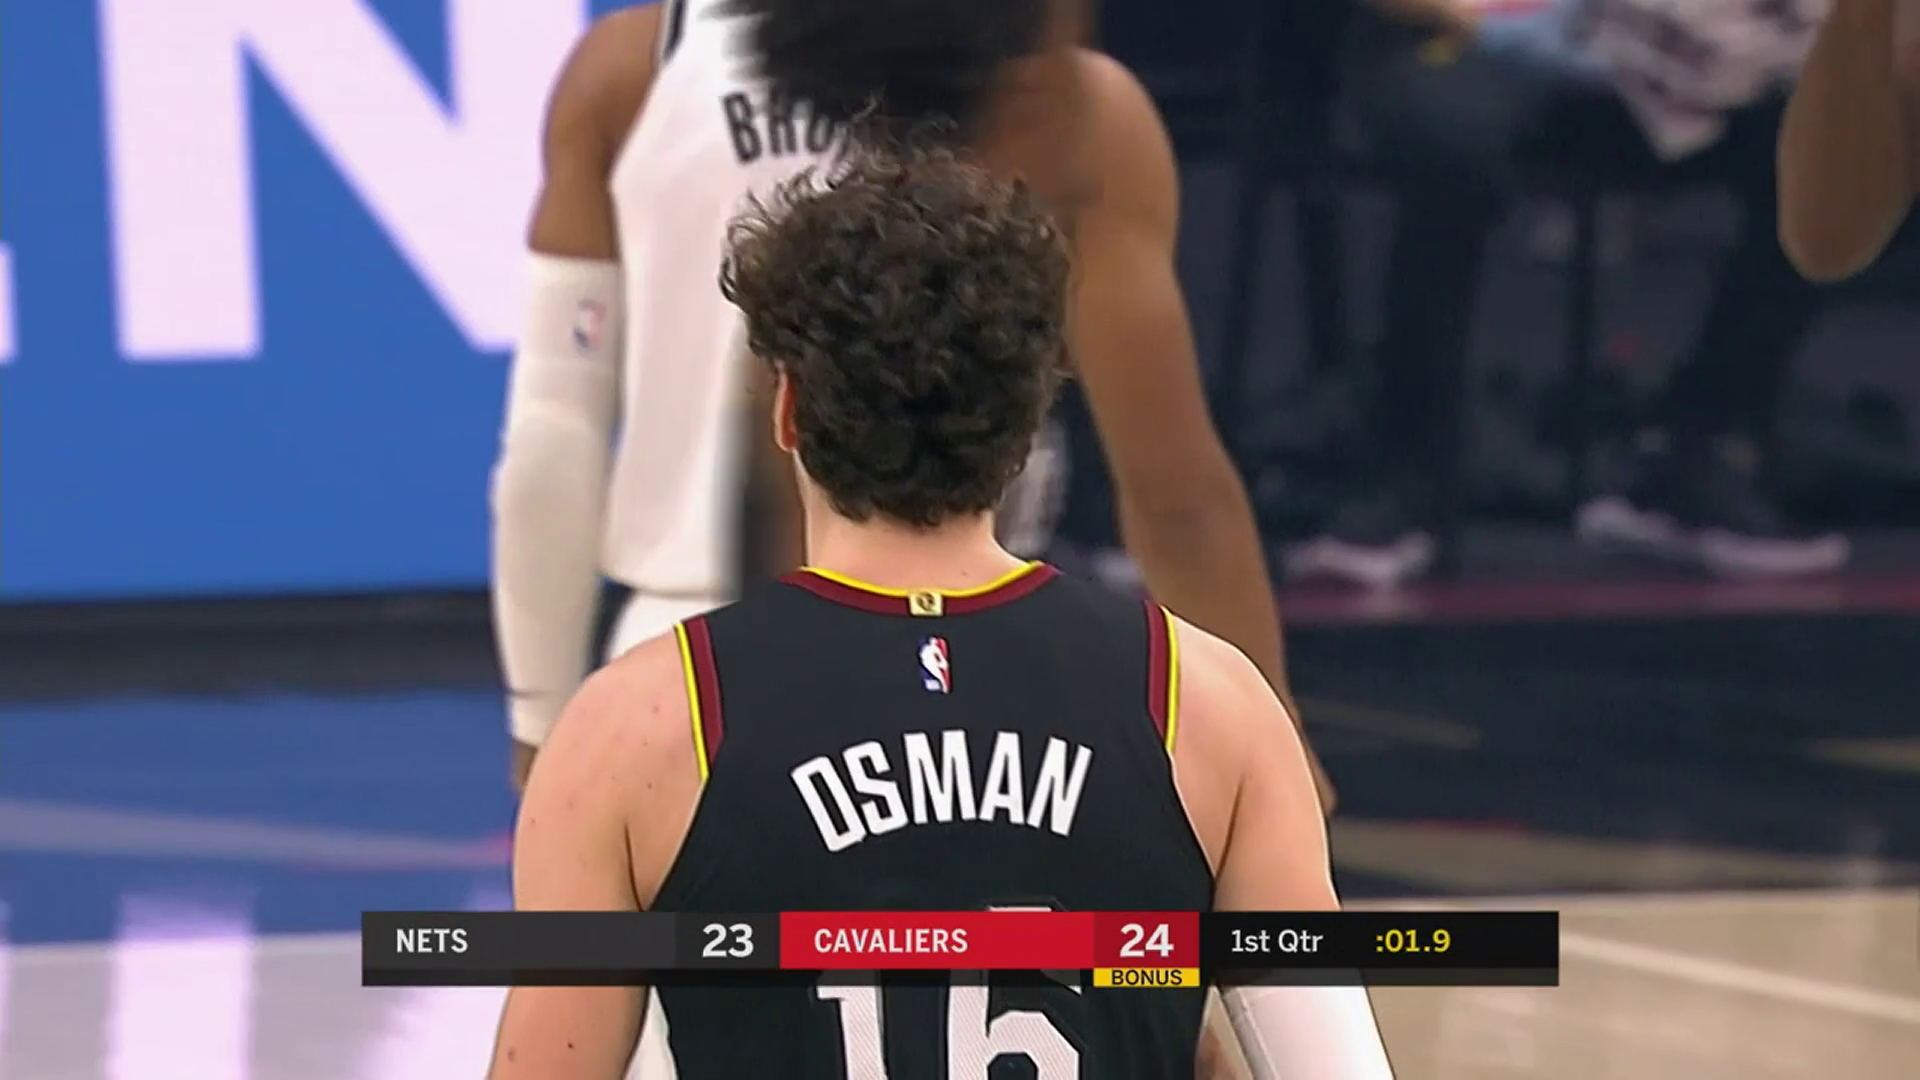 Cedi Hits a Pair of Threes to Give Cavs the Lead